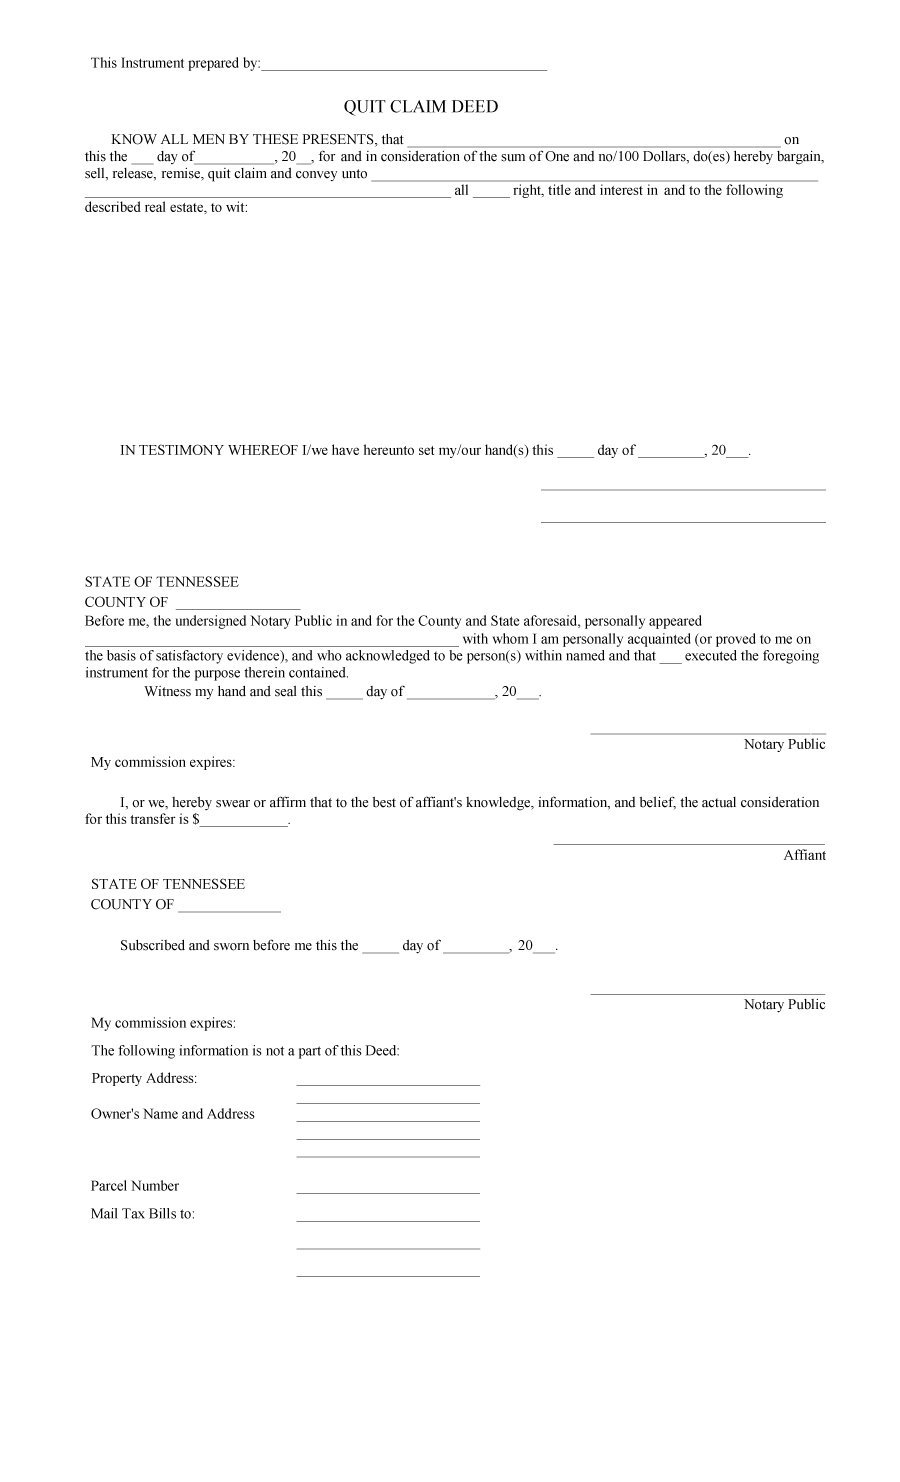 quit-claim-deed-template-08